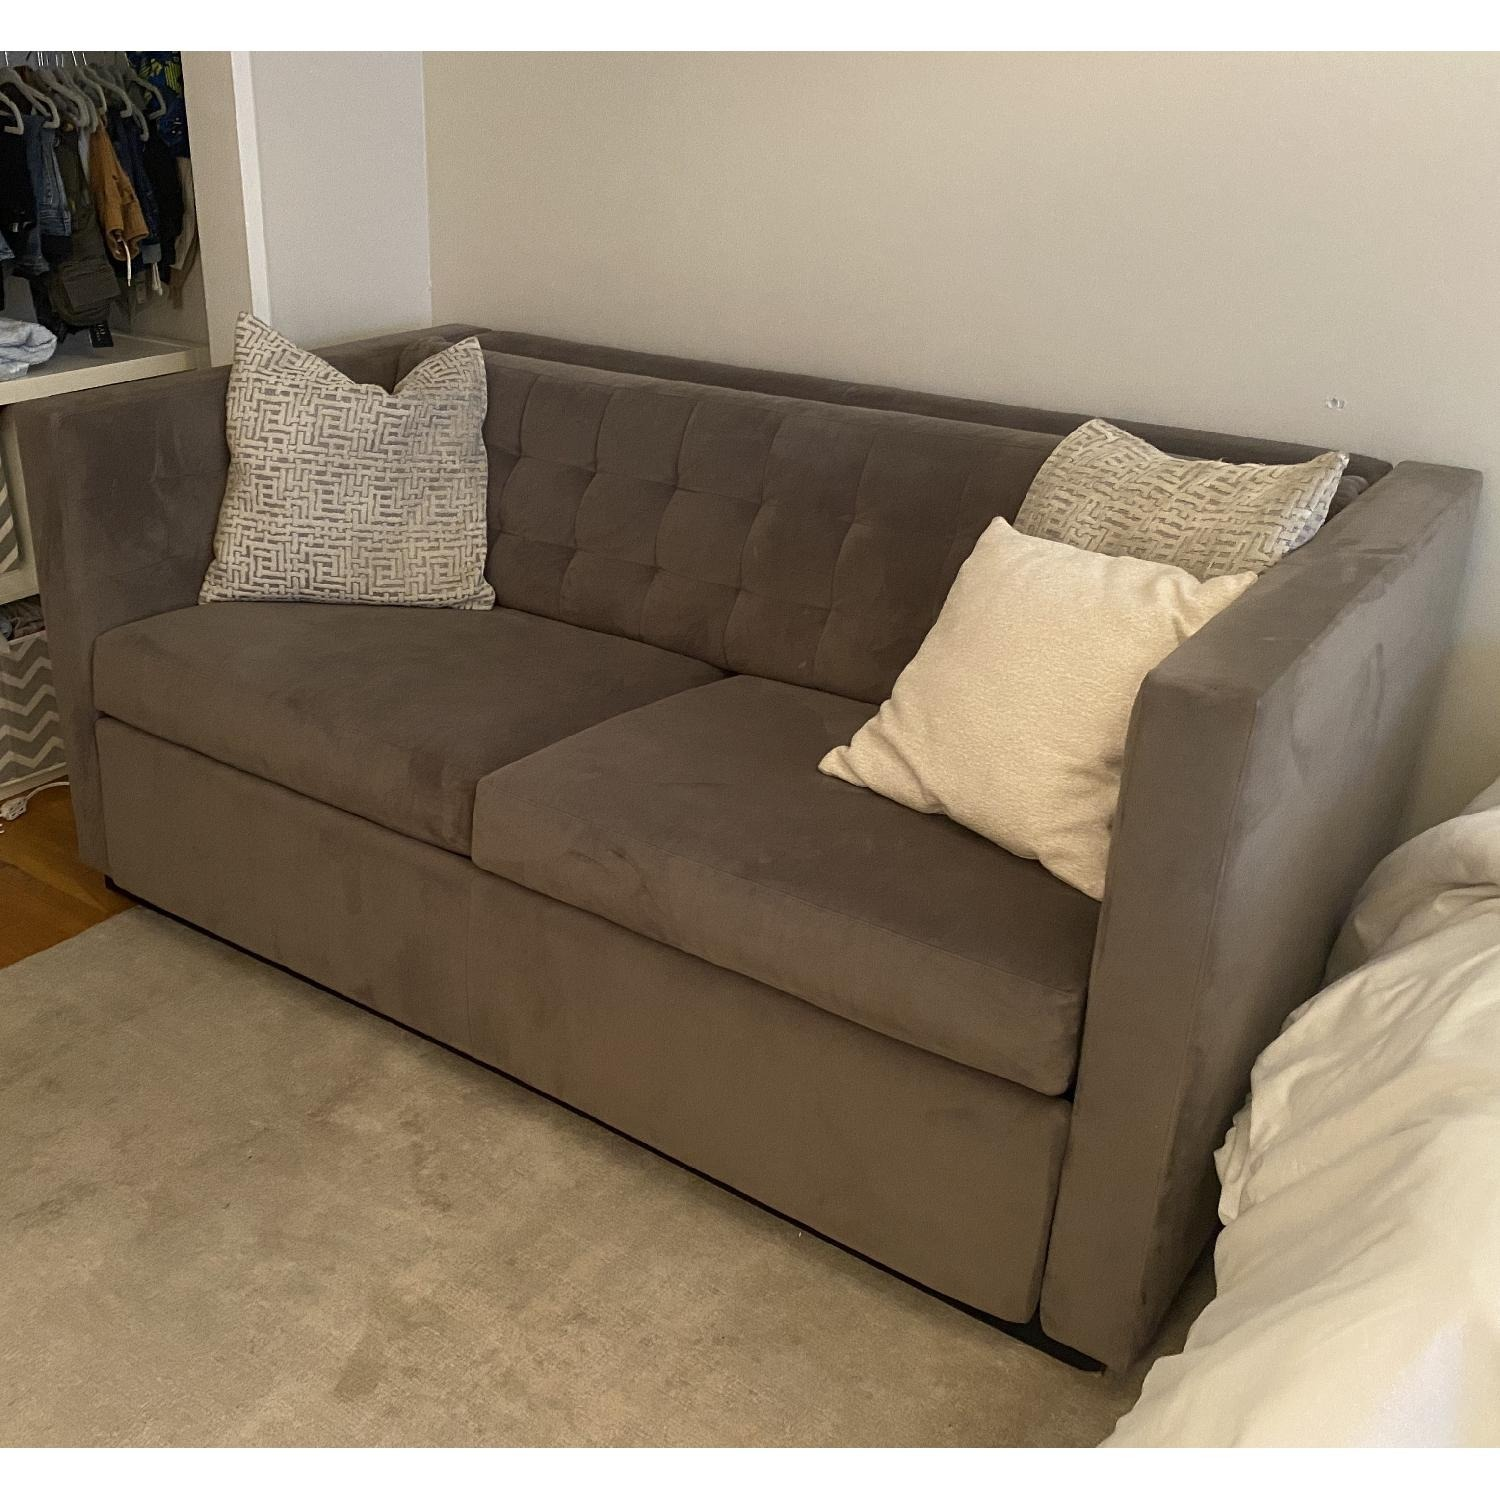 West Elm Otter Rochester Deluxe Queen Sofa